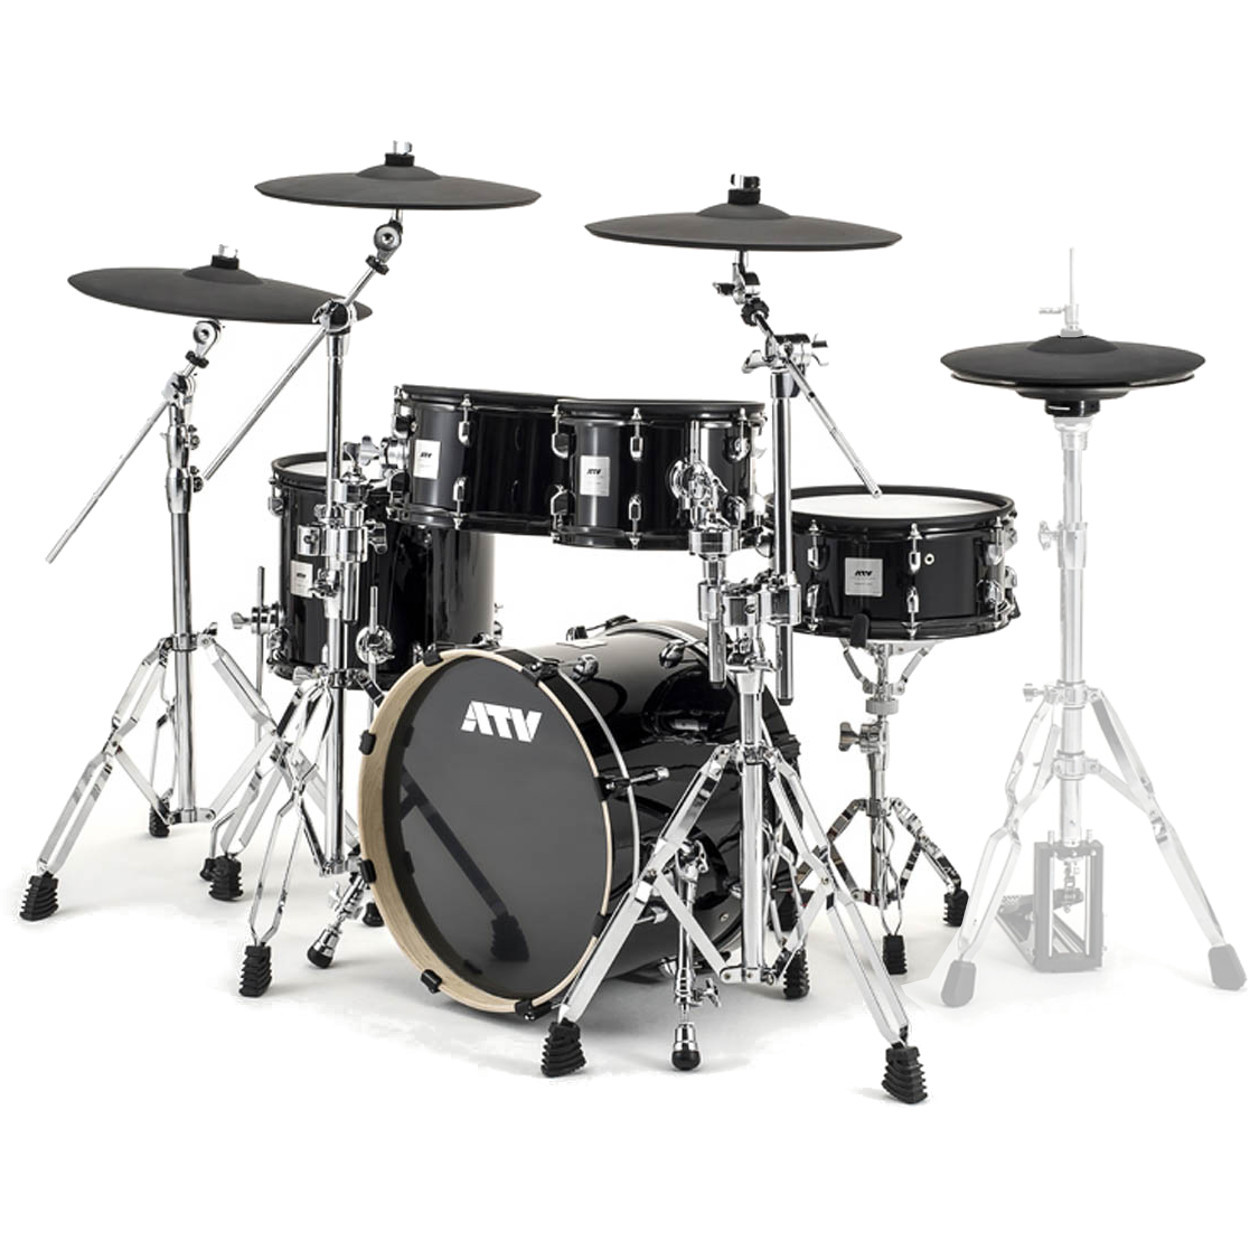 ATV aDrums Expanded Set electronic drum kit